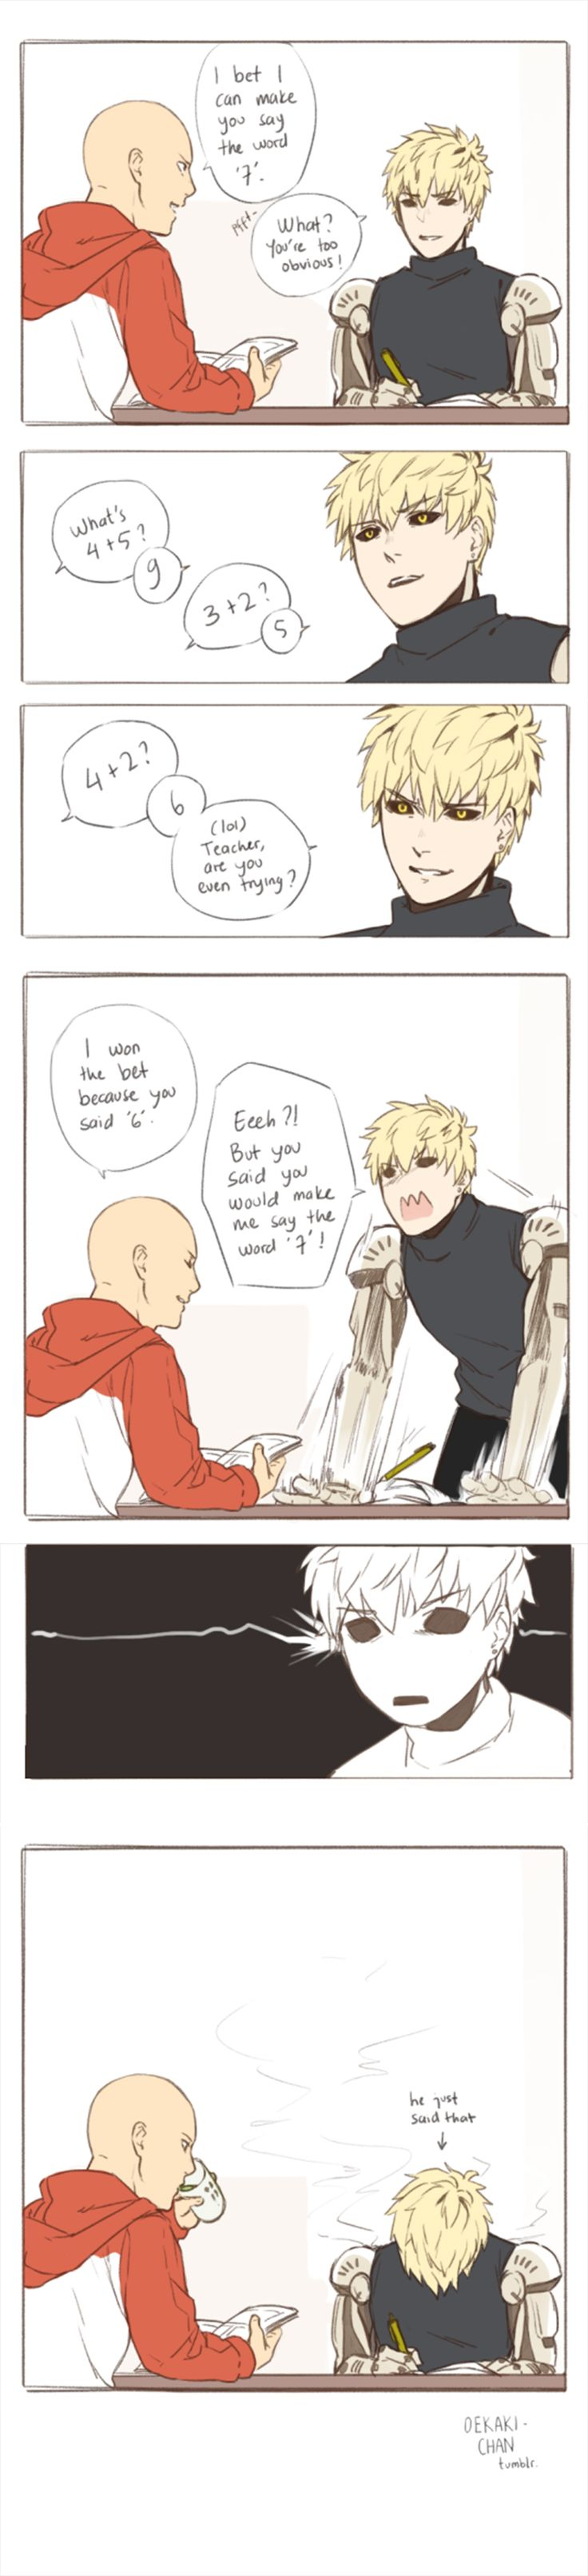 Saigenos/Genosai - One Punch Man